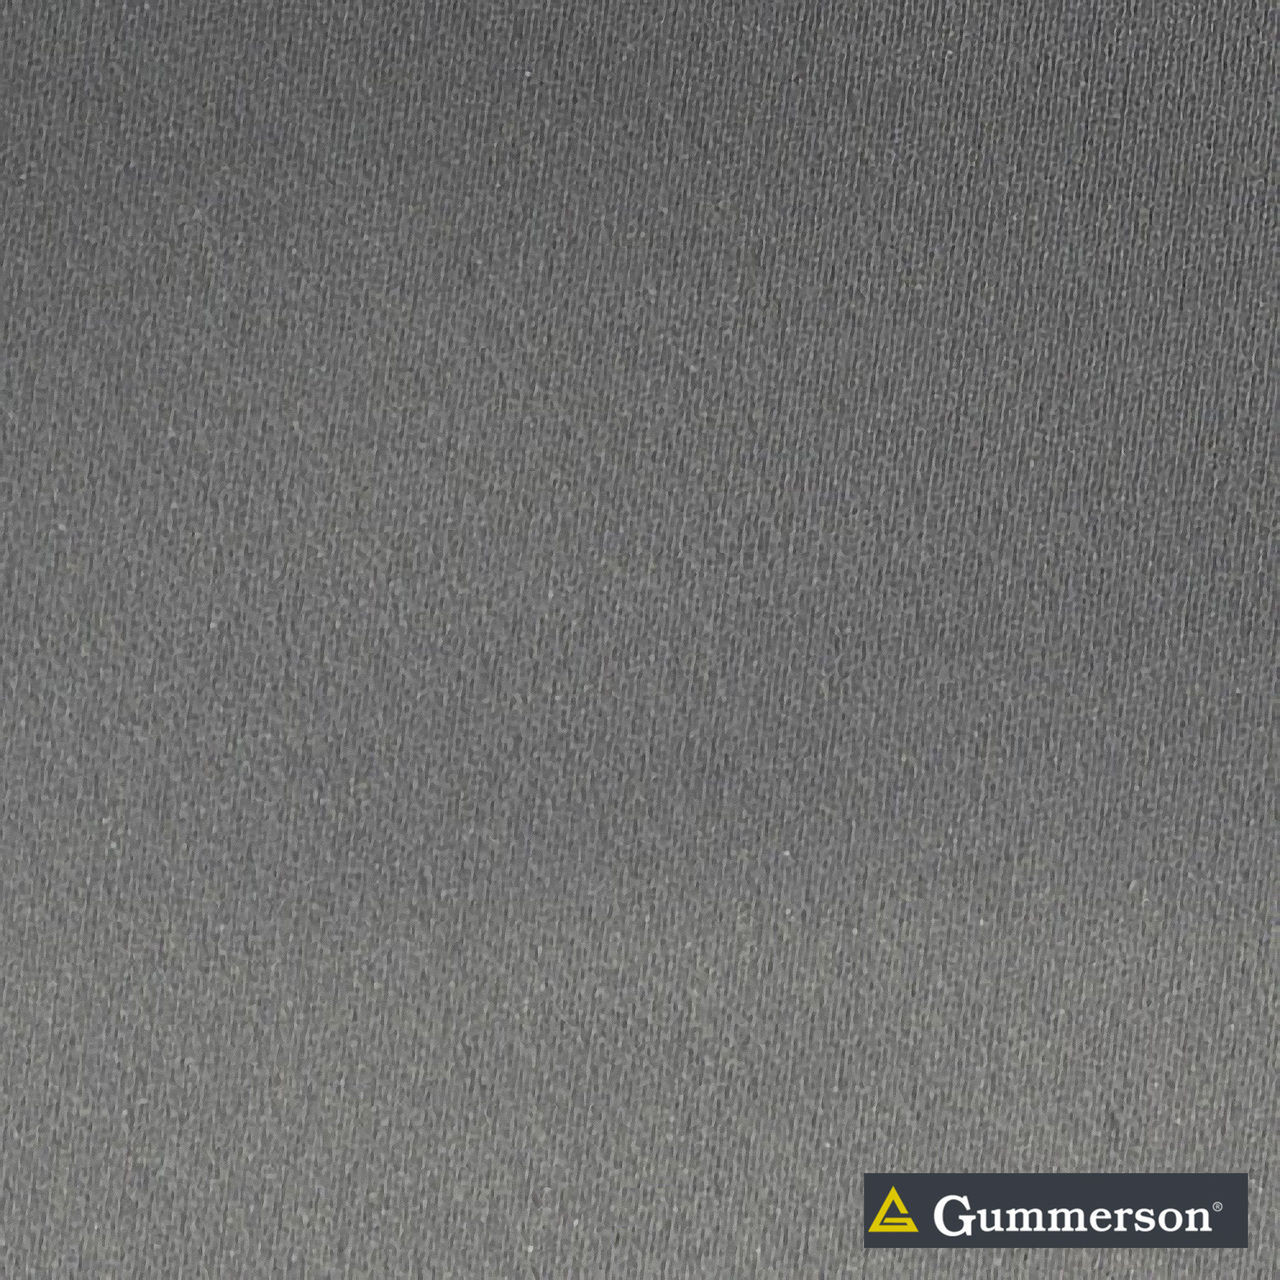 Gummerson - Continuous-Softweave Graphite Room-Darkening 290cm  | Curtain Fabric - Fire Retardant, Grey, Plain, Synthetic, Transitional, Washable, Weave, Domestic Use